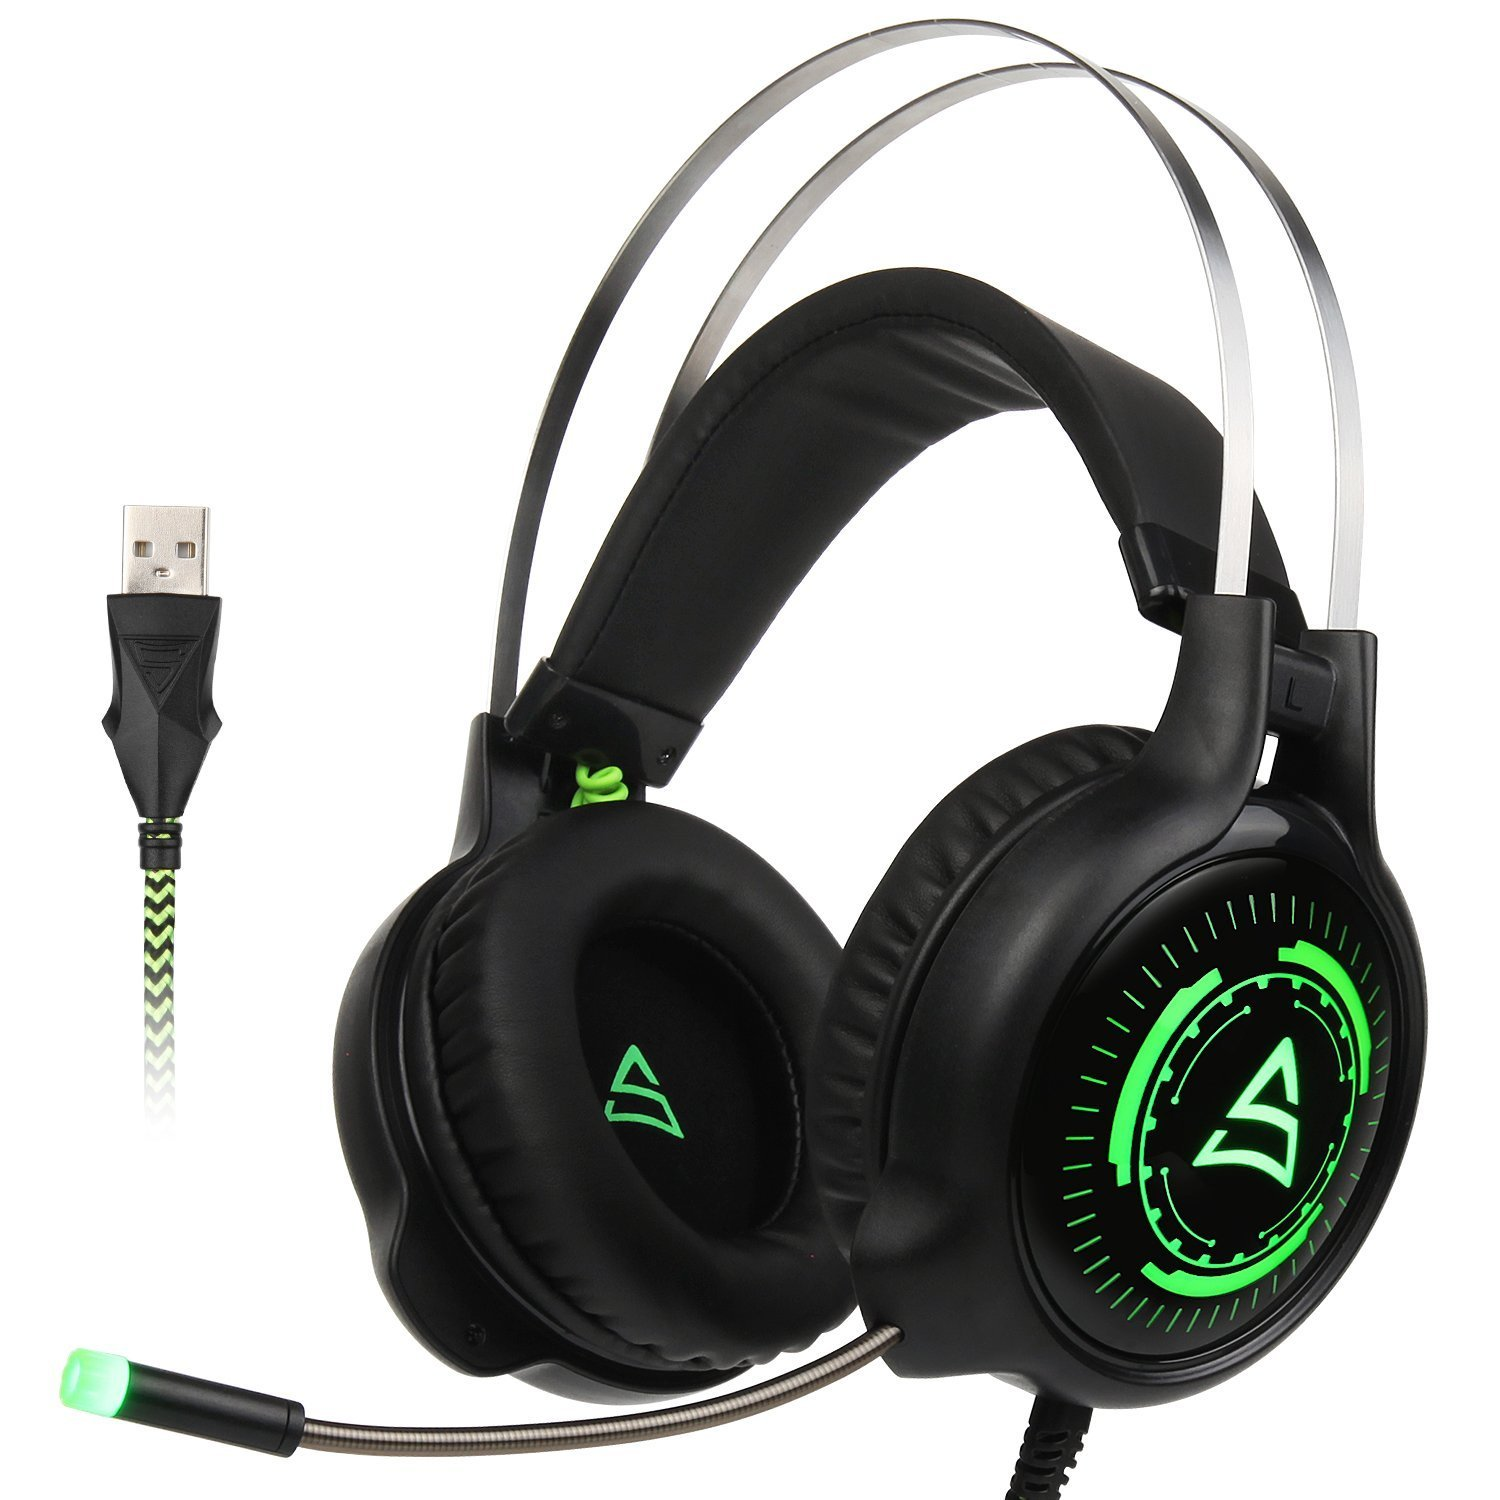 [SUPSOO Newly Updated USB Gaming Headphone] G815 Gaming headset Computer Over Ear Stereo Gaming Headsets With Mic Noise Isolating Volume Control LED Light For PC & MAC (Black/Green)